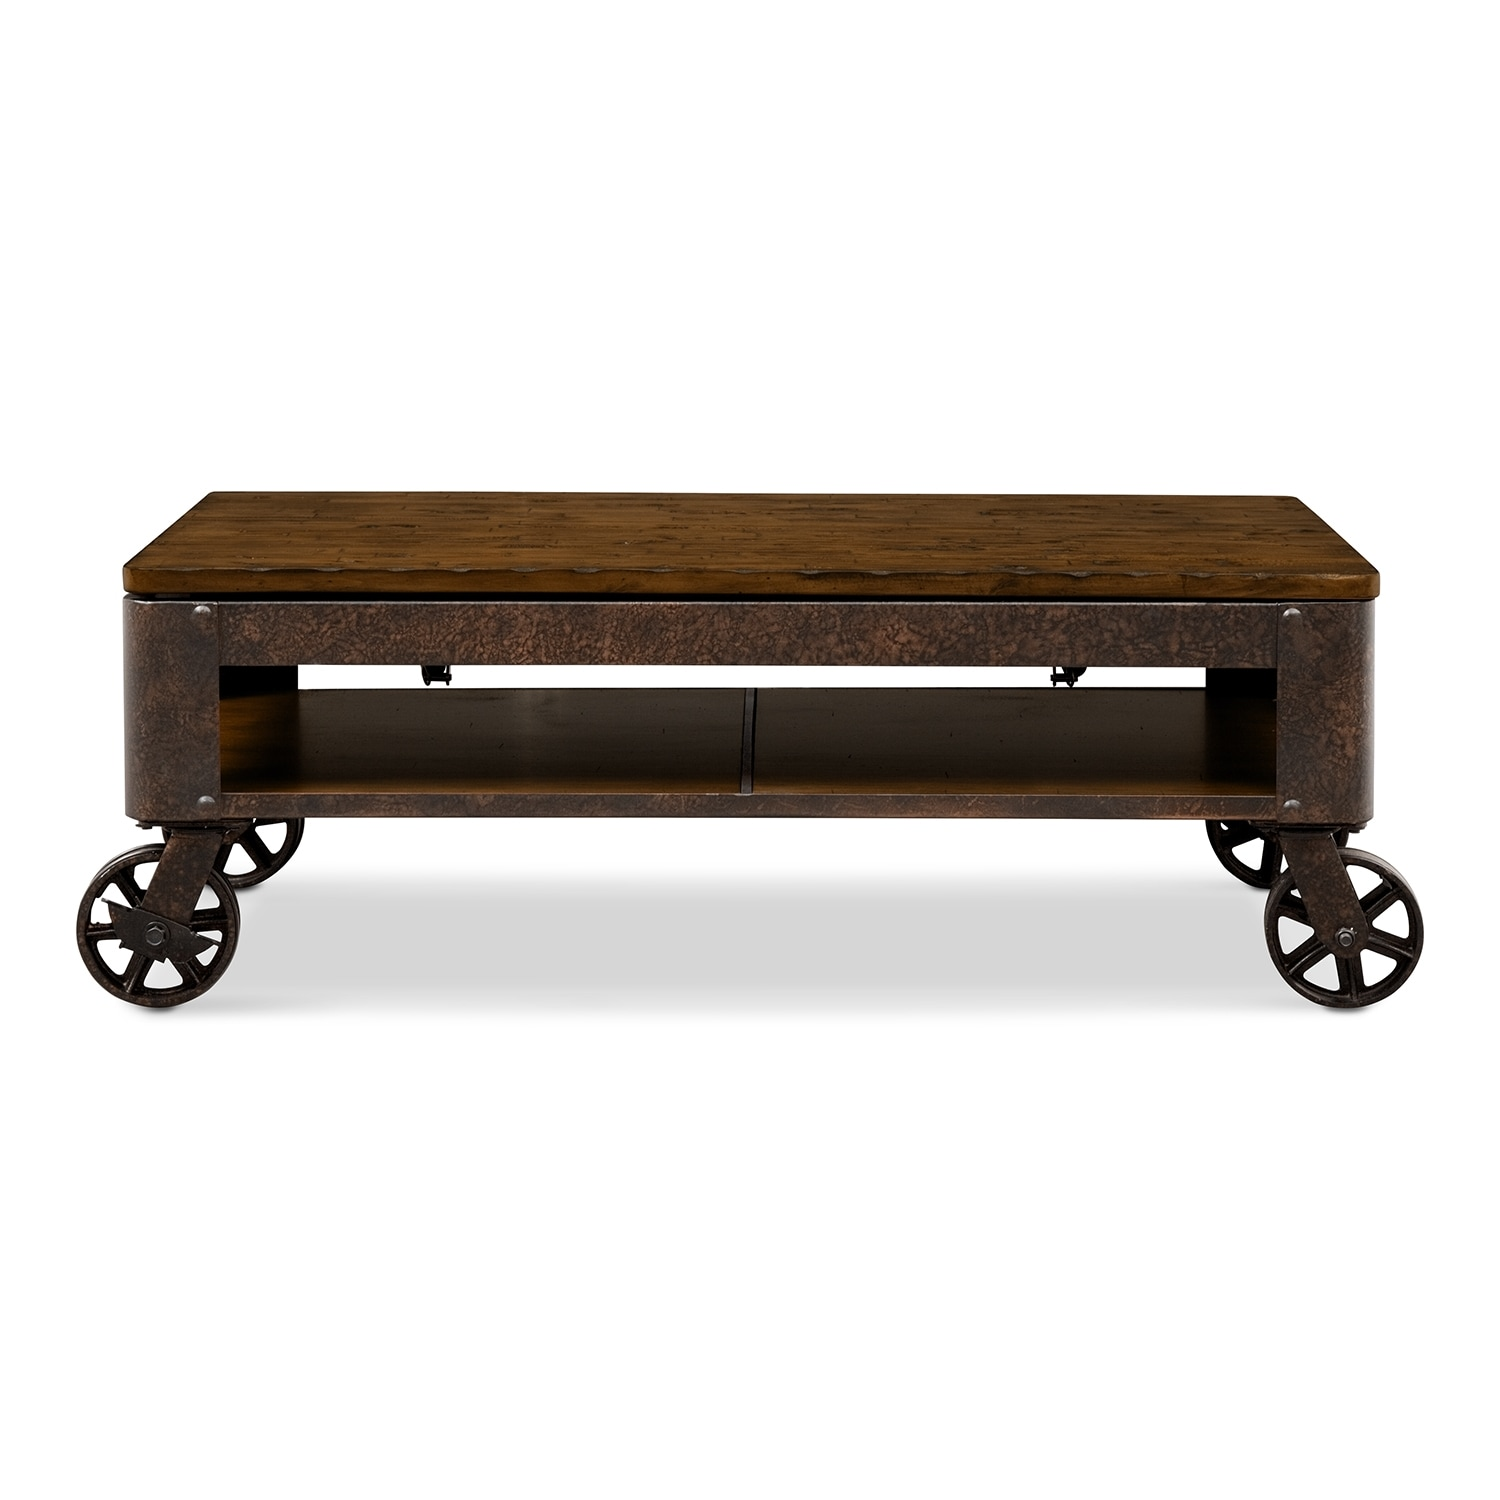 Shortline Lift-Top Cocktail Table - Distressed Pine